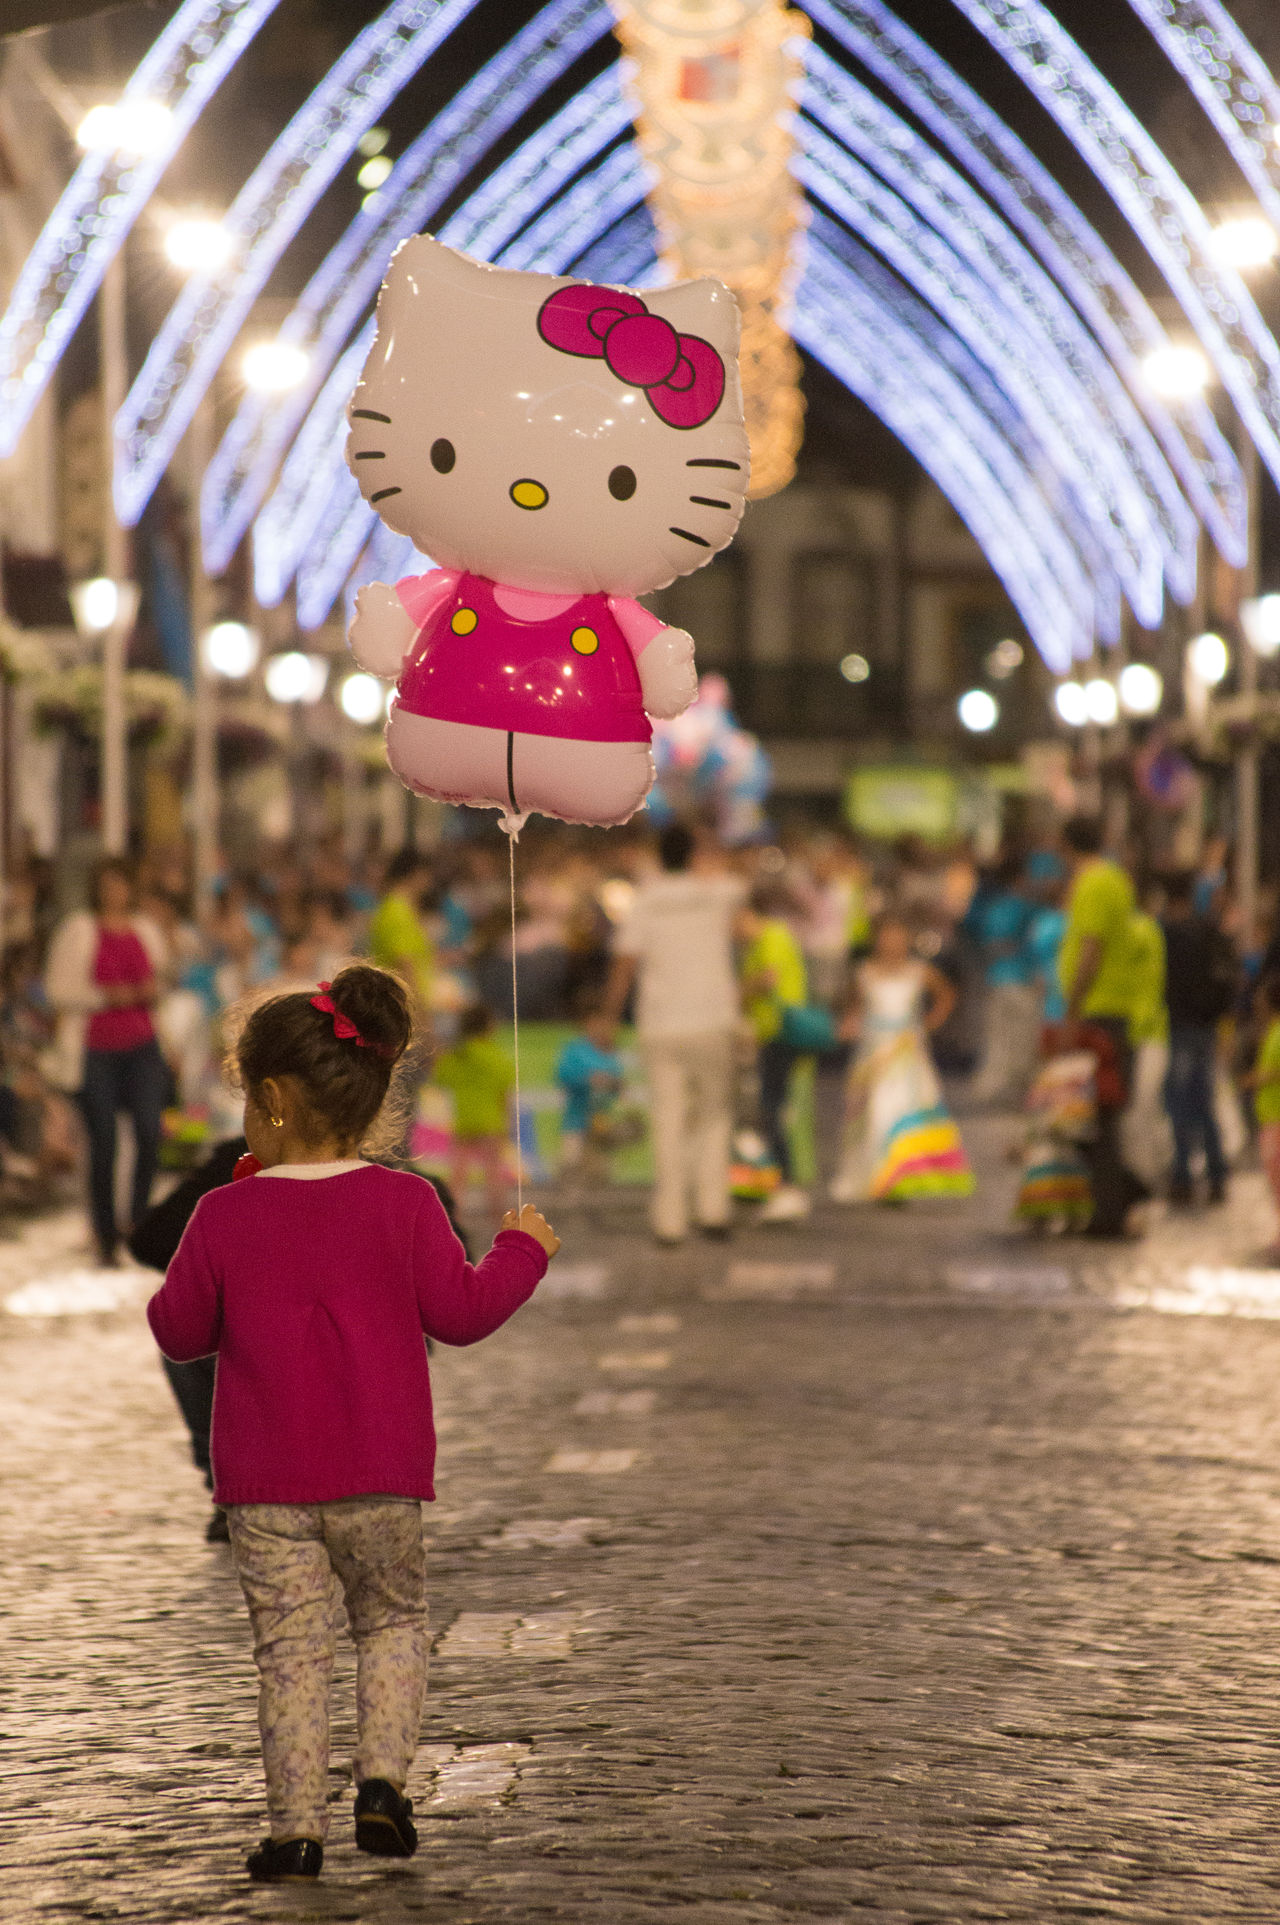 A child's dream Azores Child Childhood City Day Focus On Foreground Full Length Hello Kitty Outdoors Real People Sanjoaninas EyeEmNewHere